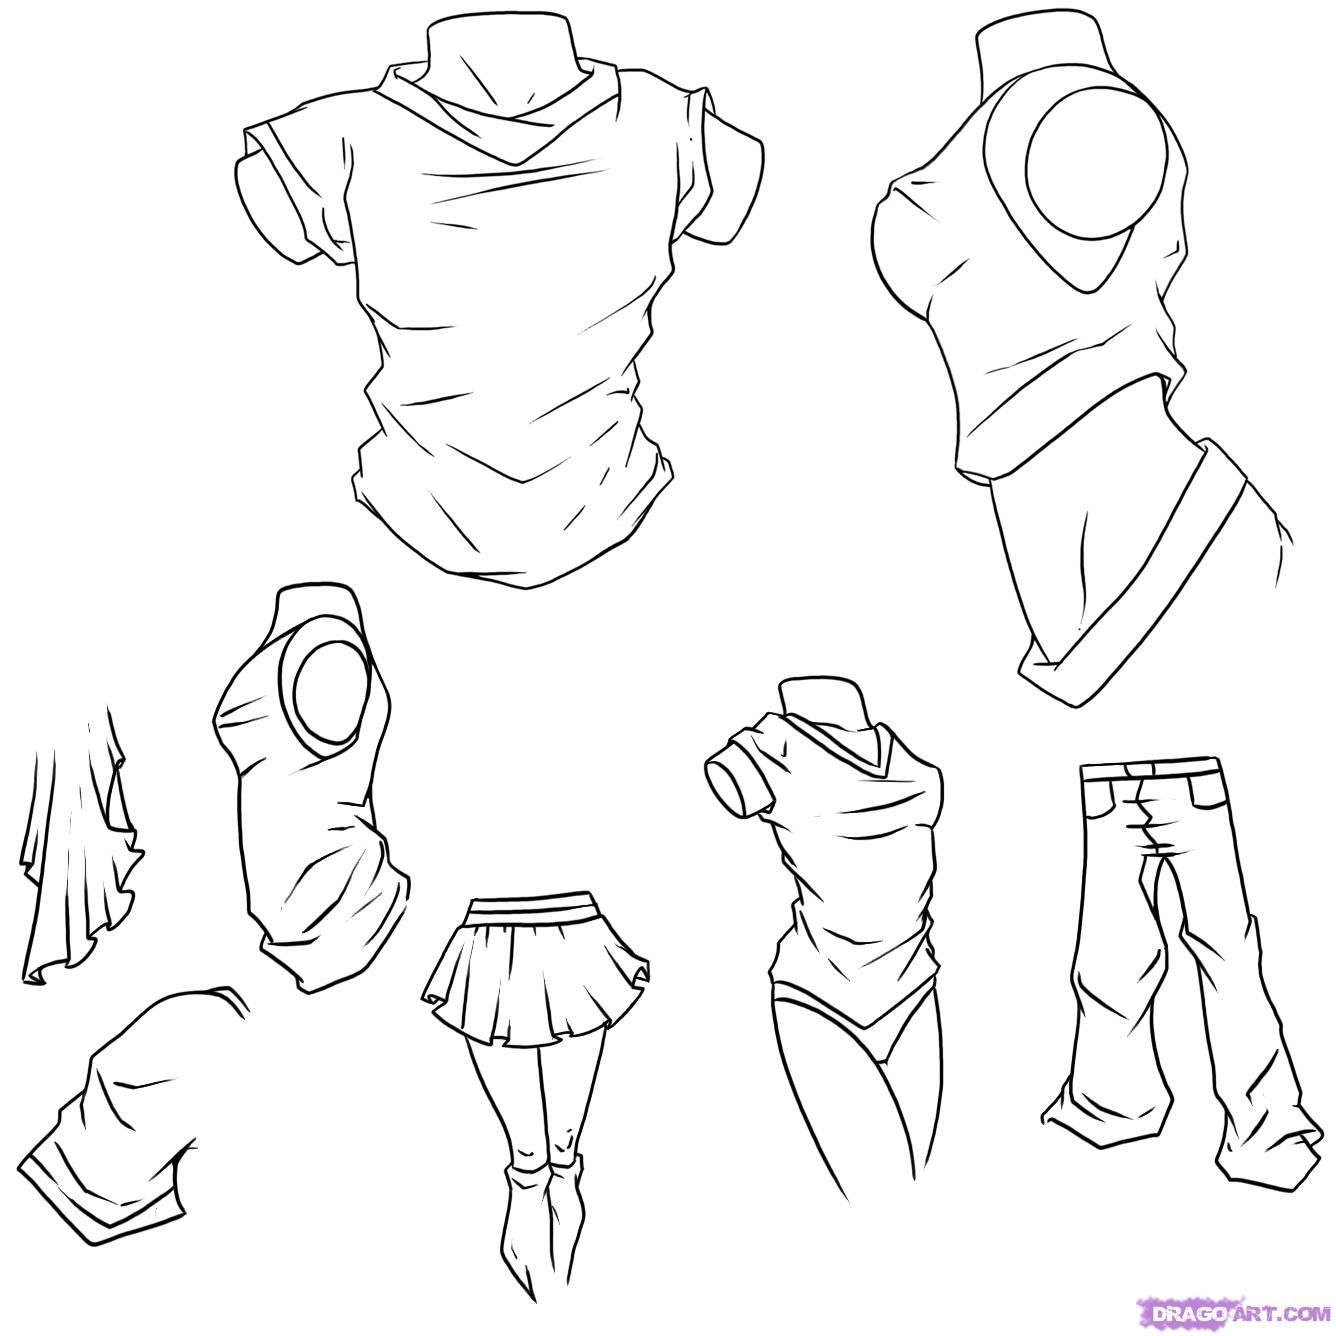 Anime Hand Drawing Tutorial Anime Clothing Uniform